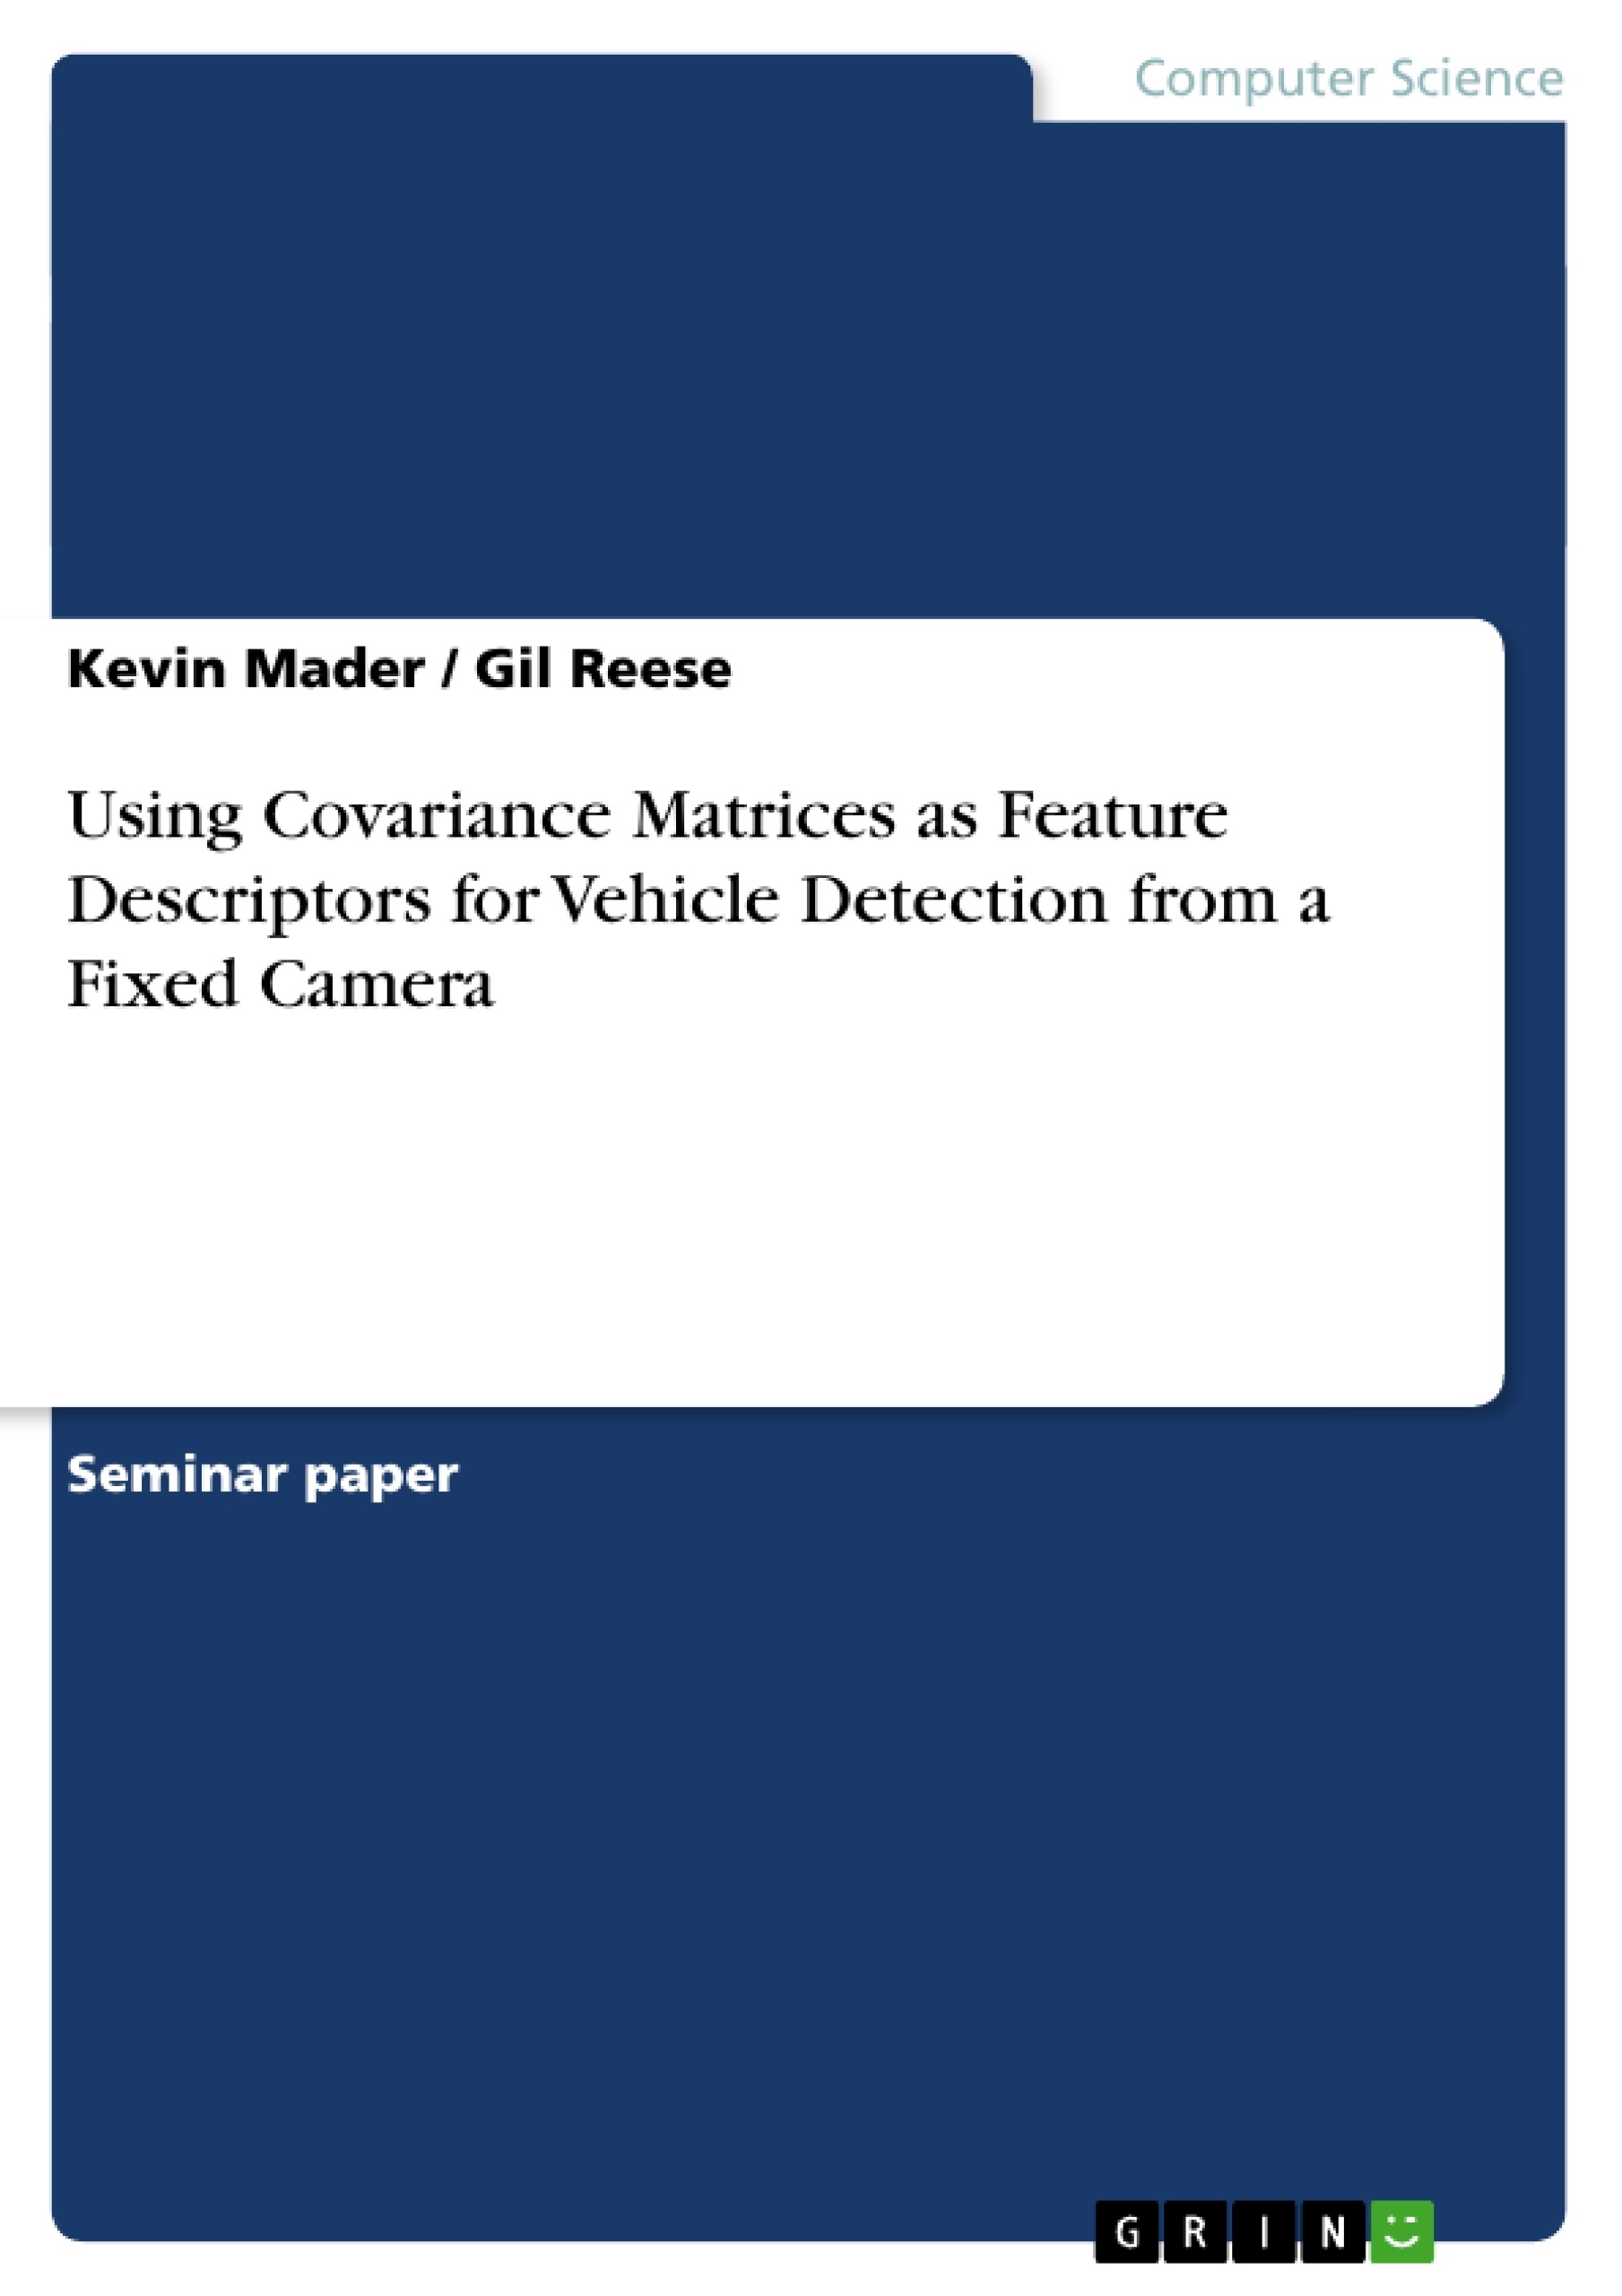 Title: Using Covariance Matrices as Feature Descriptors for Vehicle Detection from a Fixed Camera